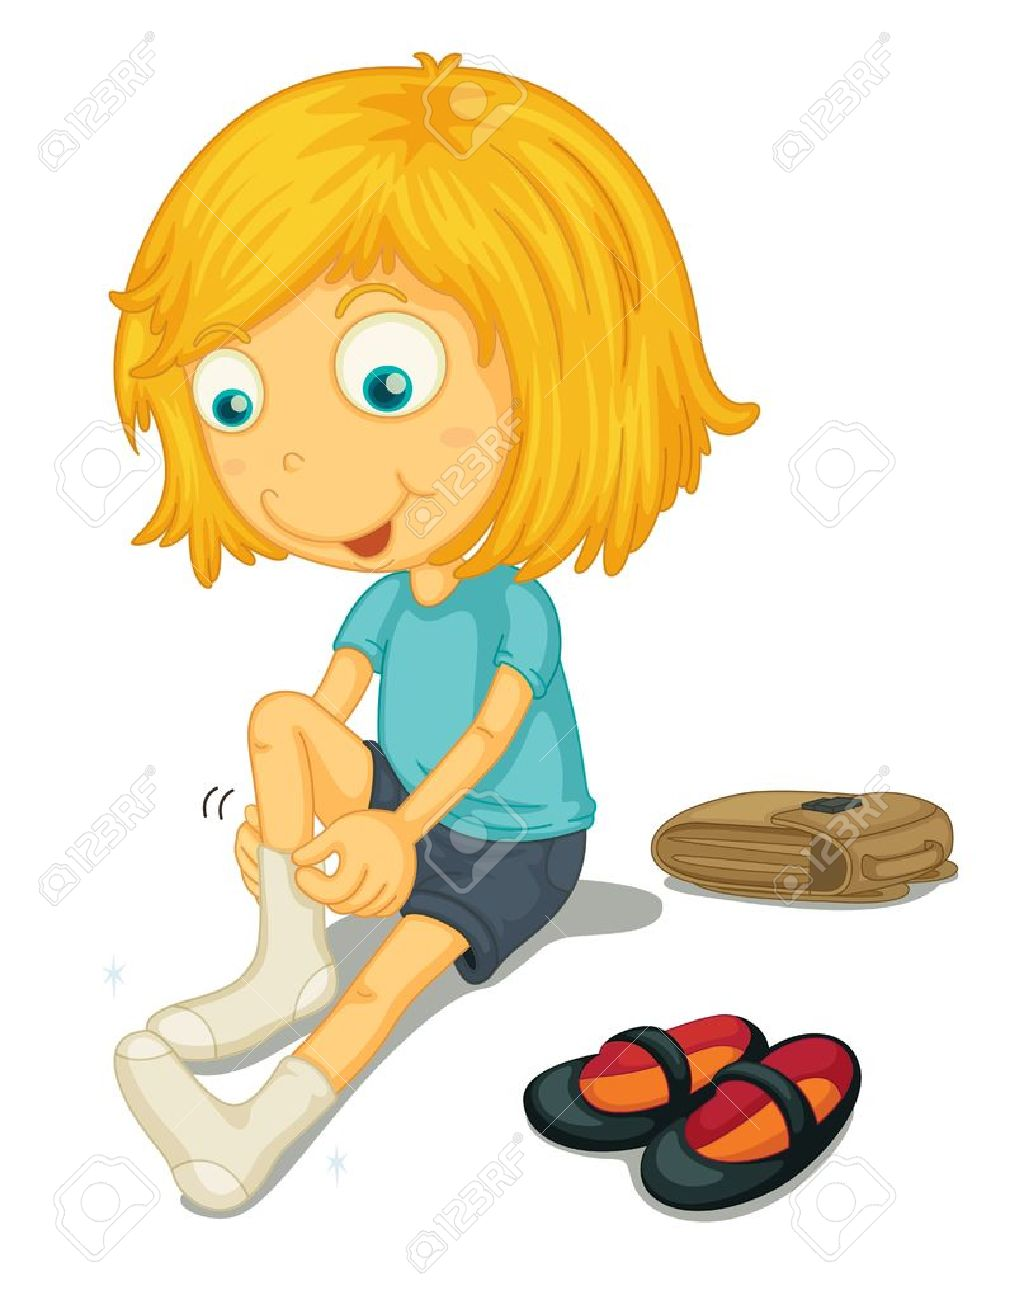 Illustration of girl putting on shoes Stock Vector - 13516364